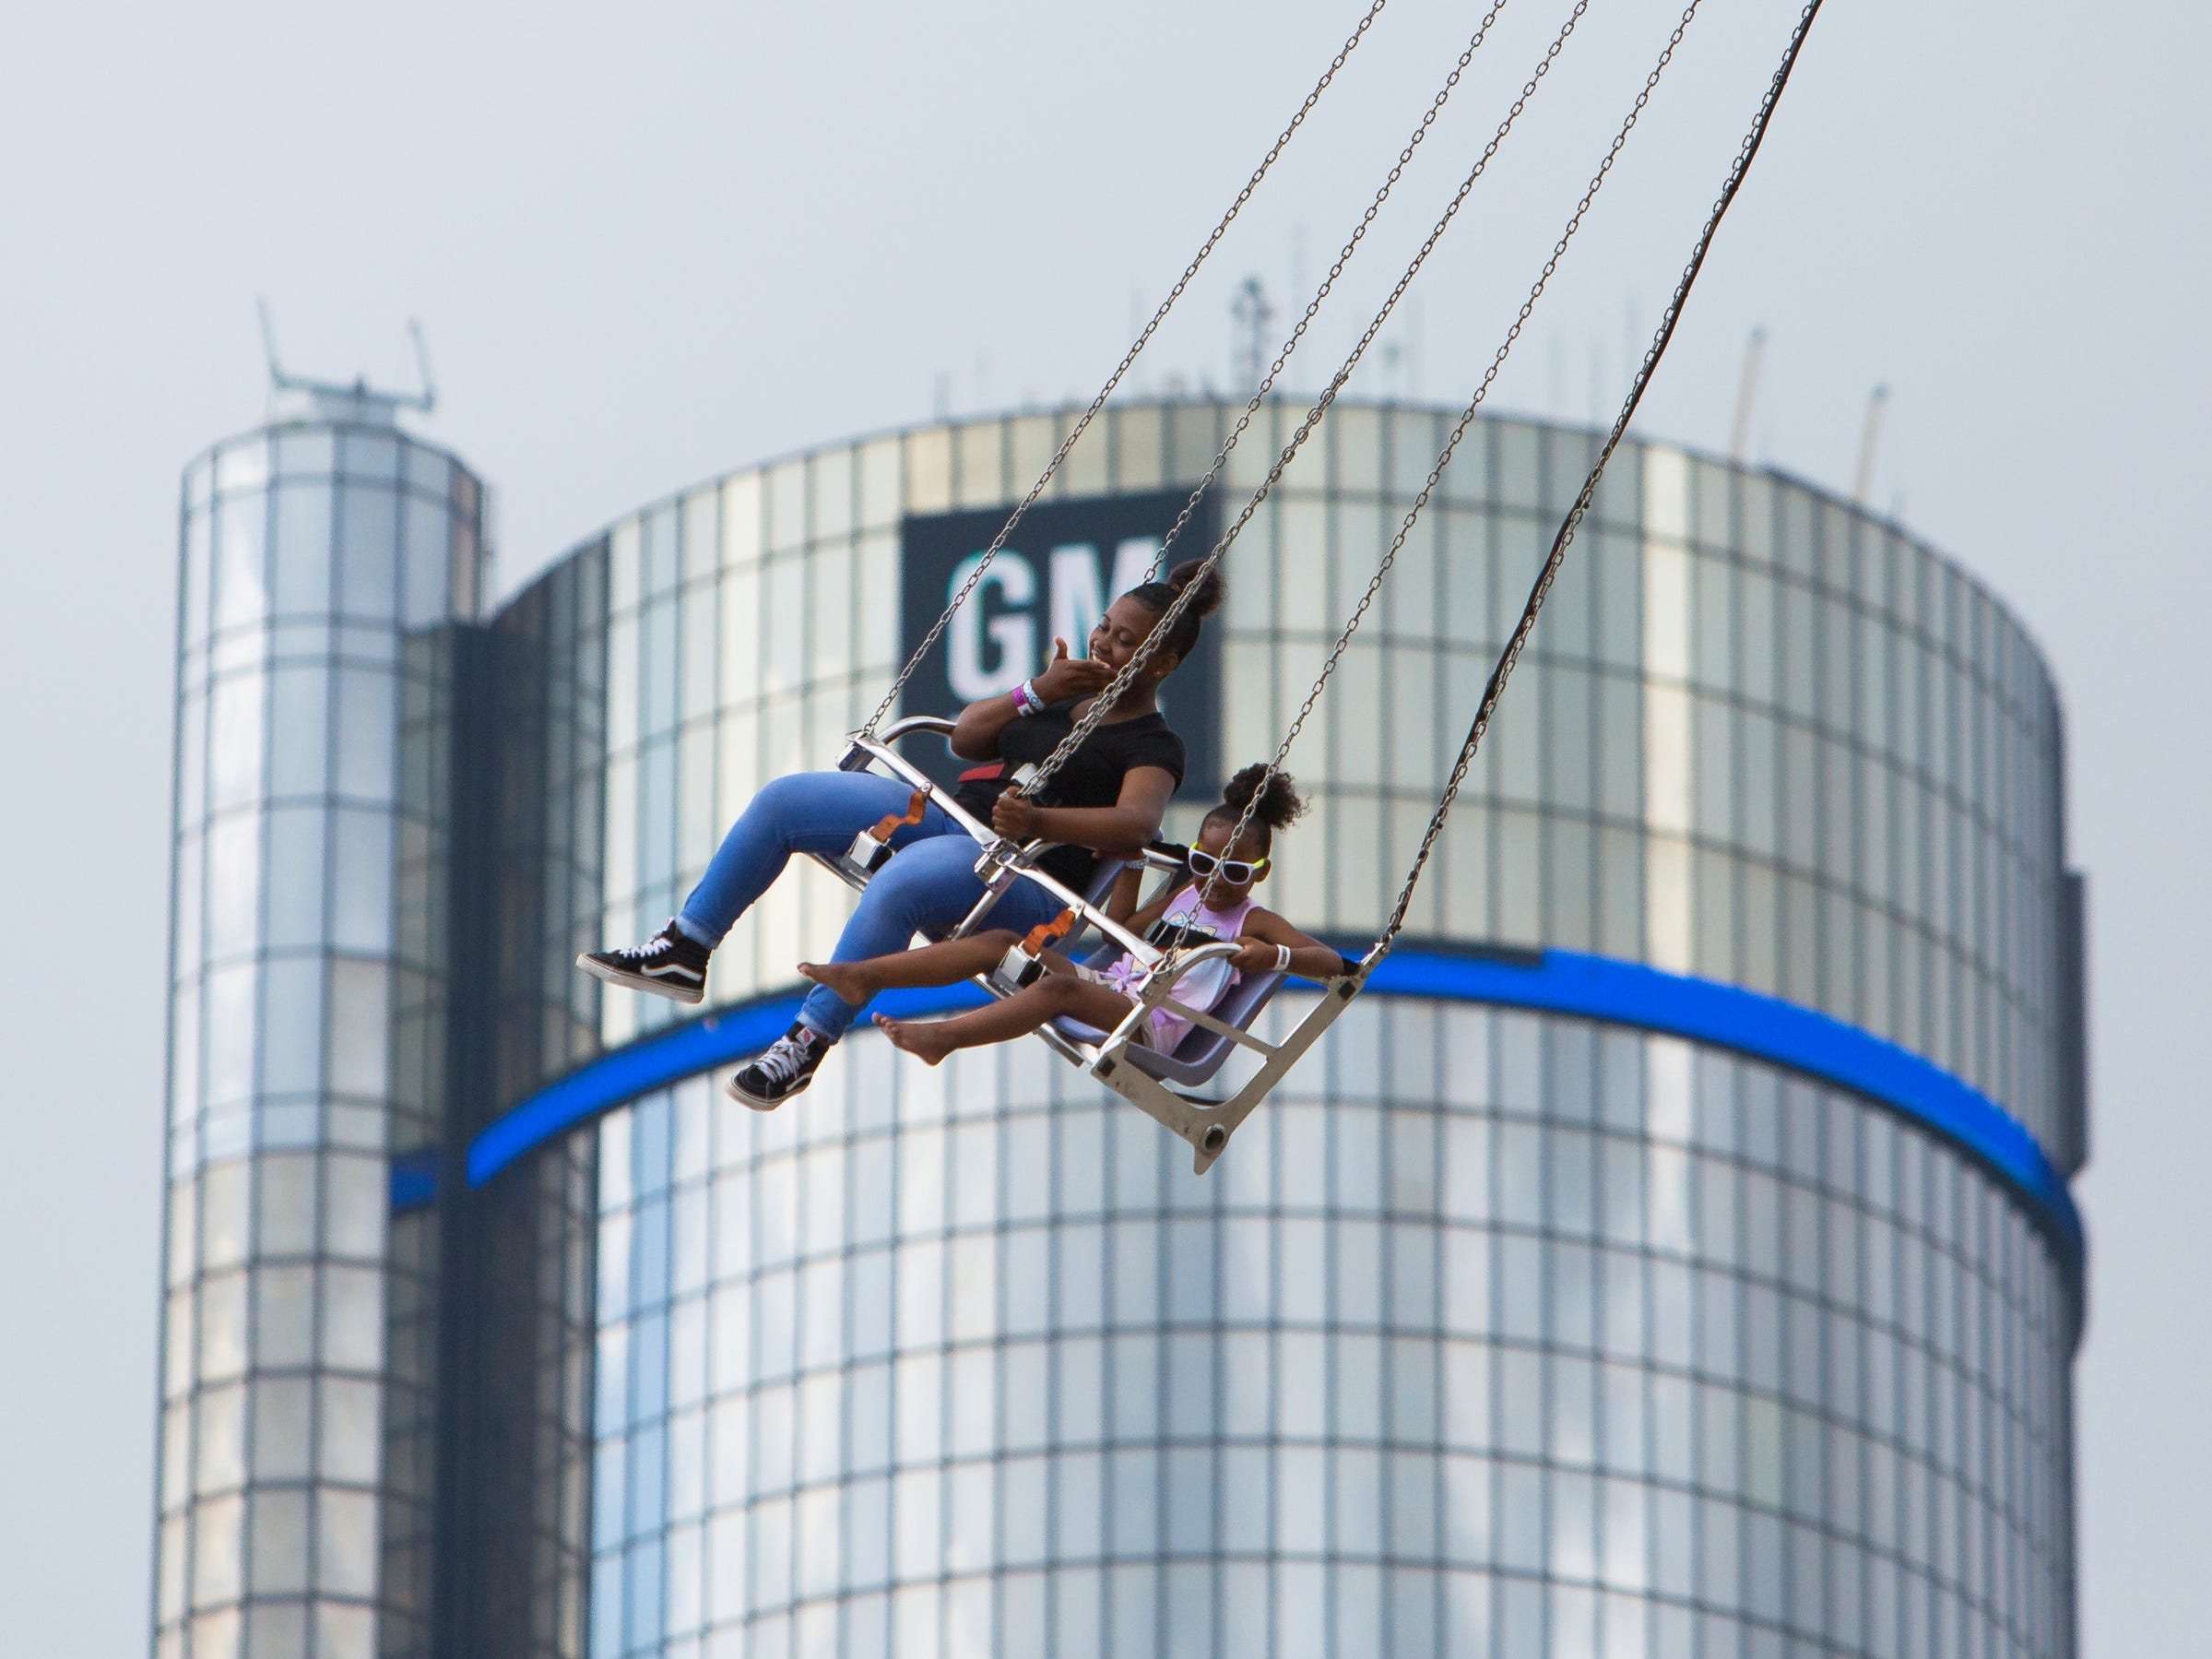 Karisma Coleman, 13, of Detroit, rides the swings with her sister Kimarie, 6 during GM River Days at the Detroit Riverfront in Detroit on June 23, 2018.